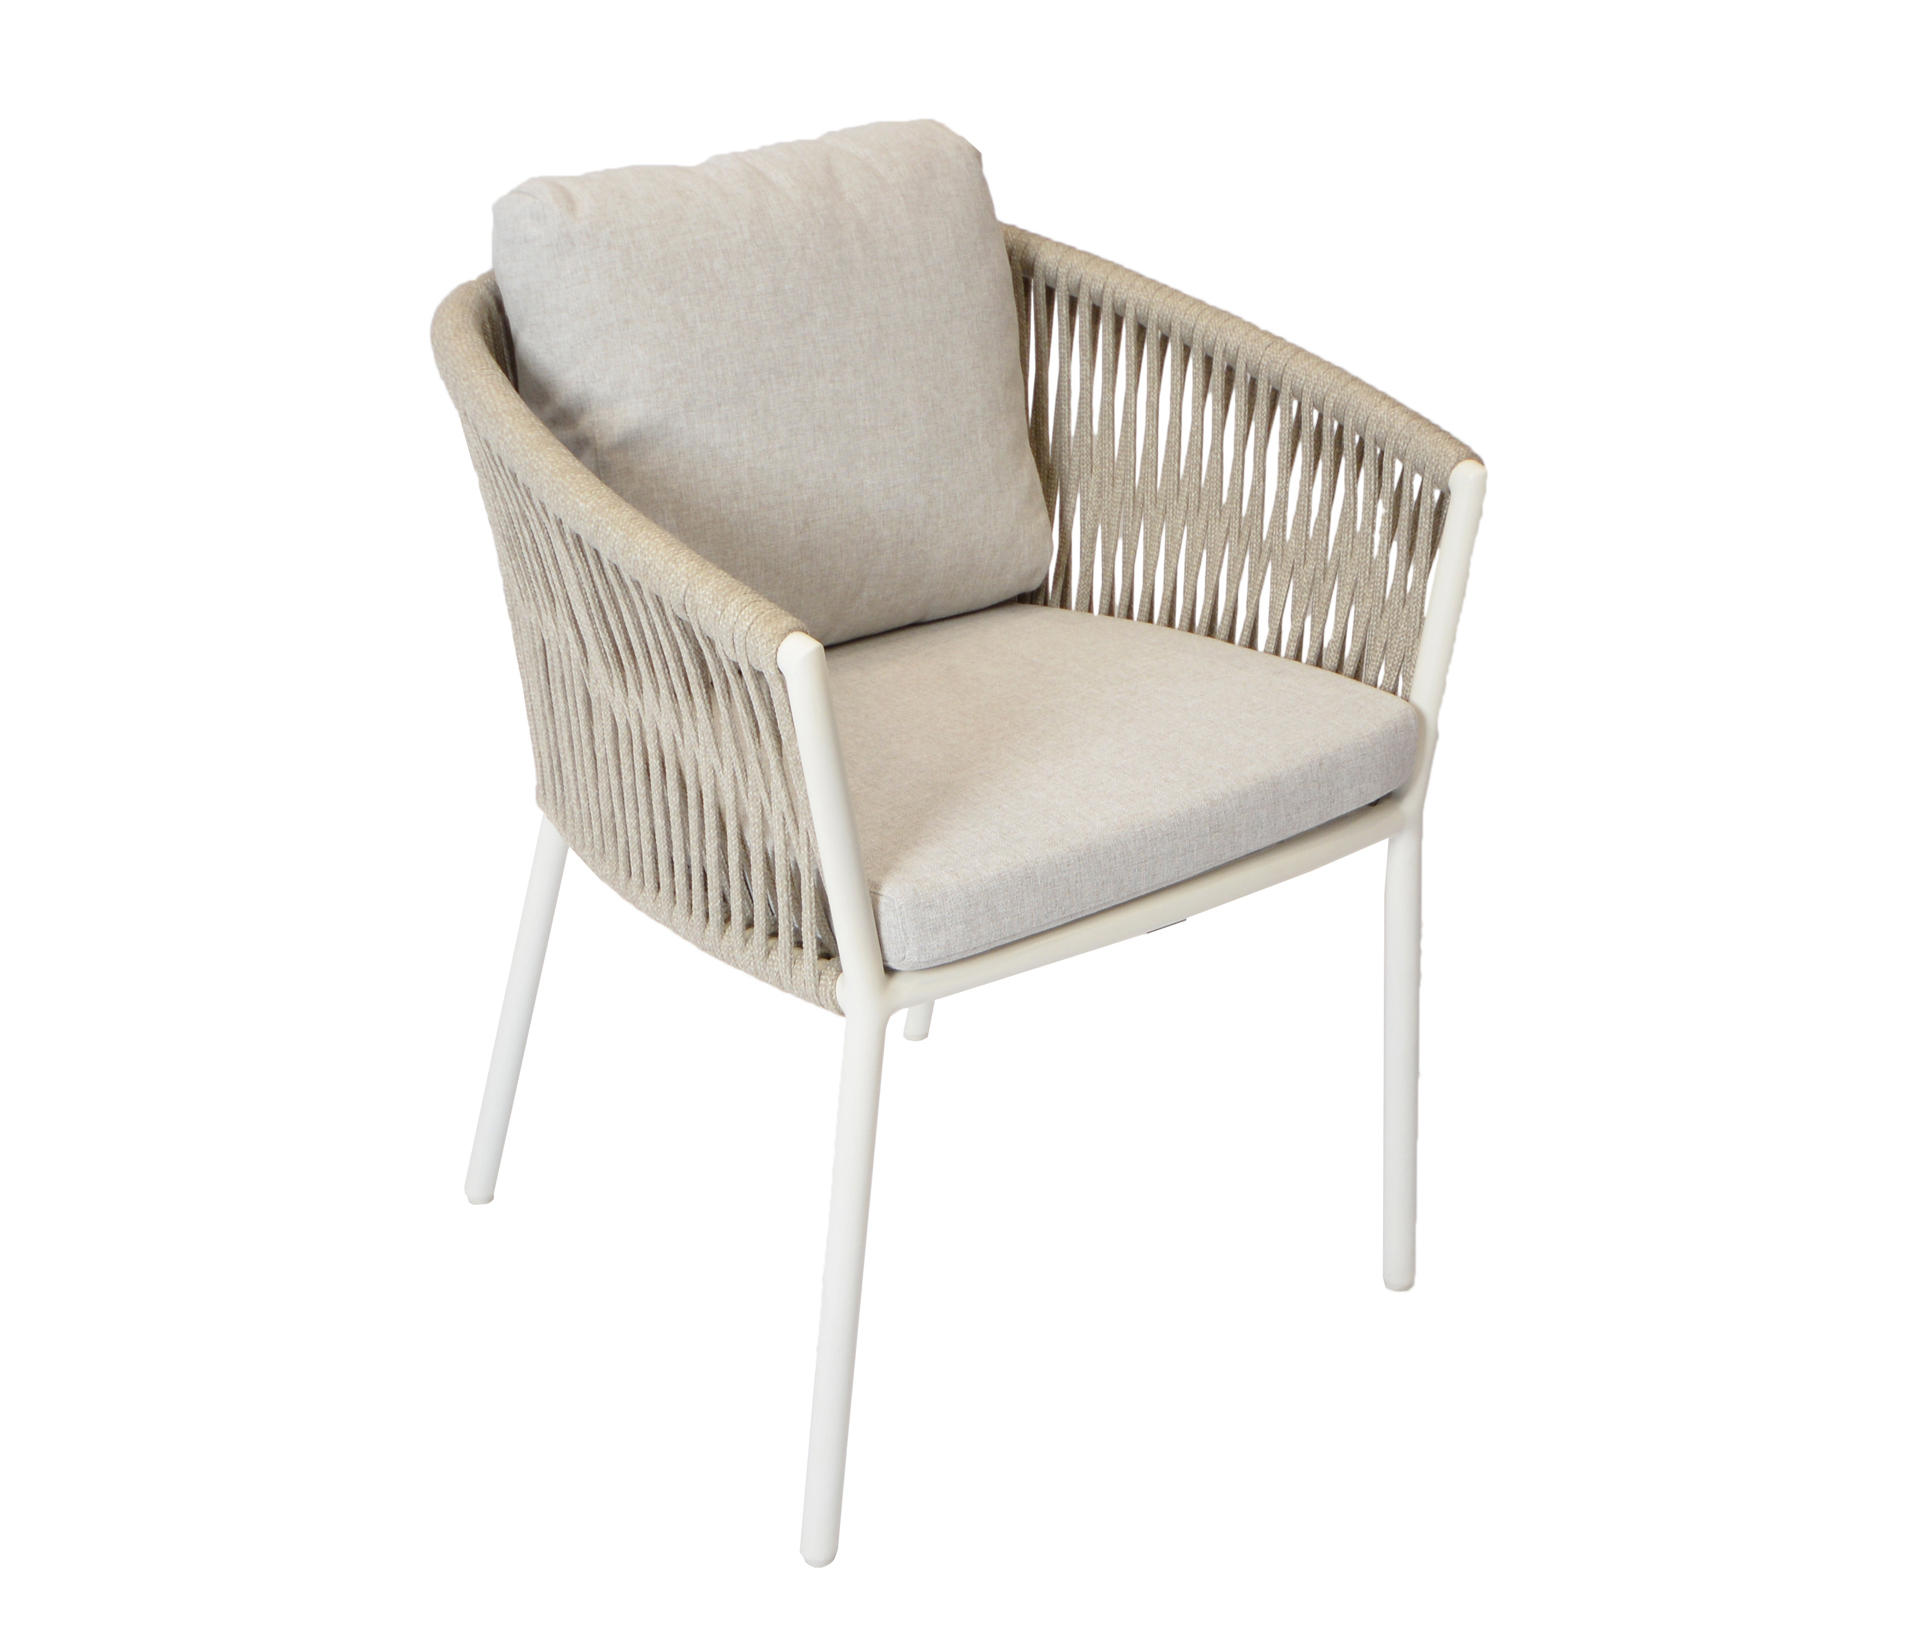 Cosmo Armchair Chairs From Fischer Mobel Architonic